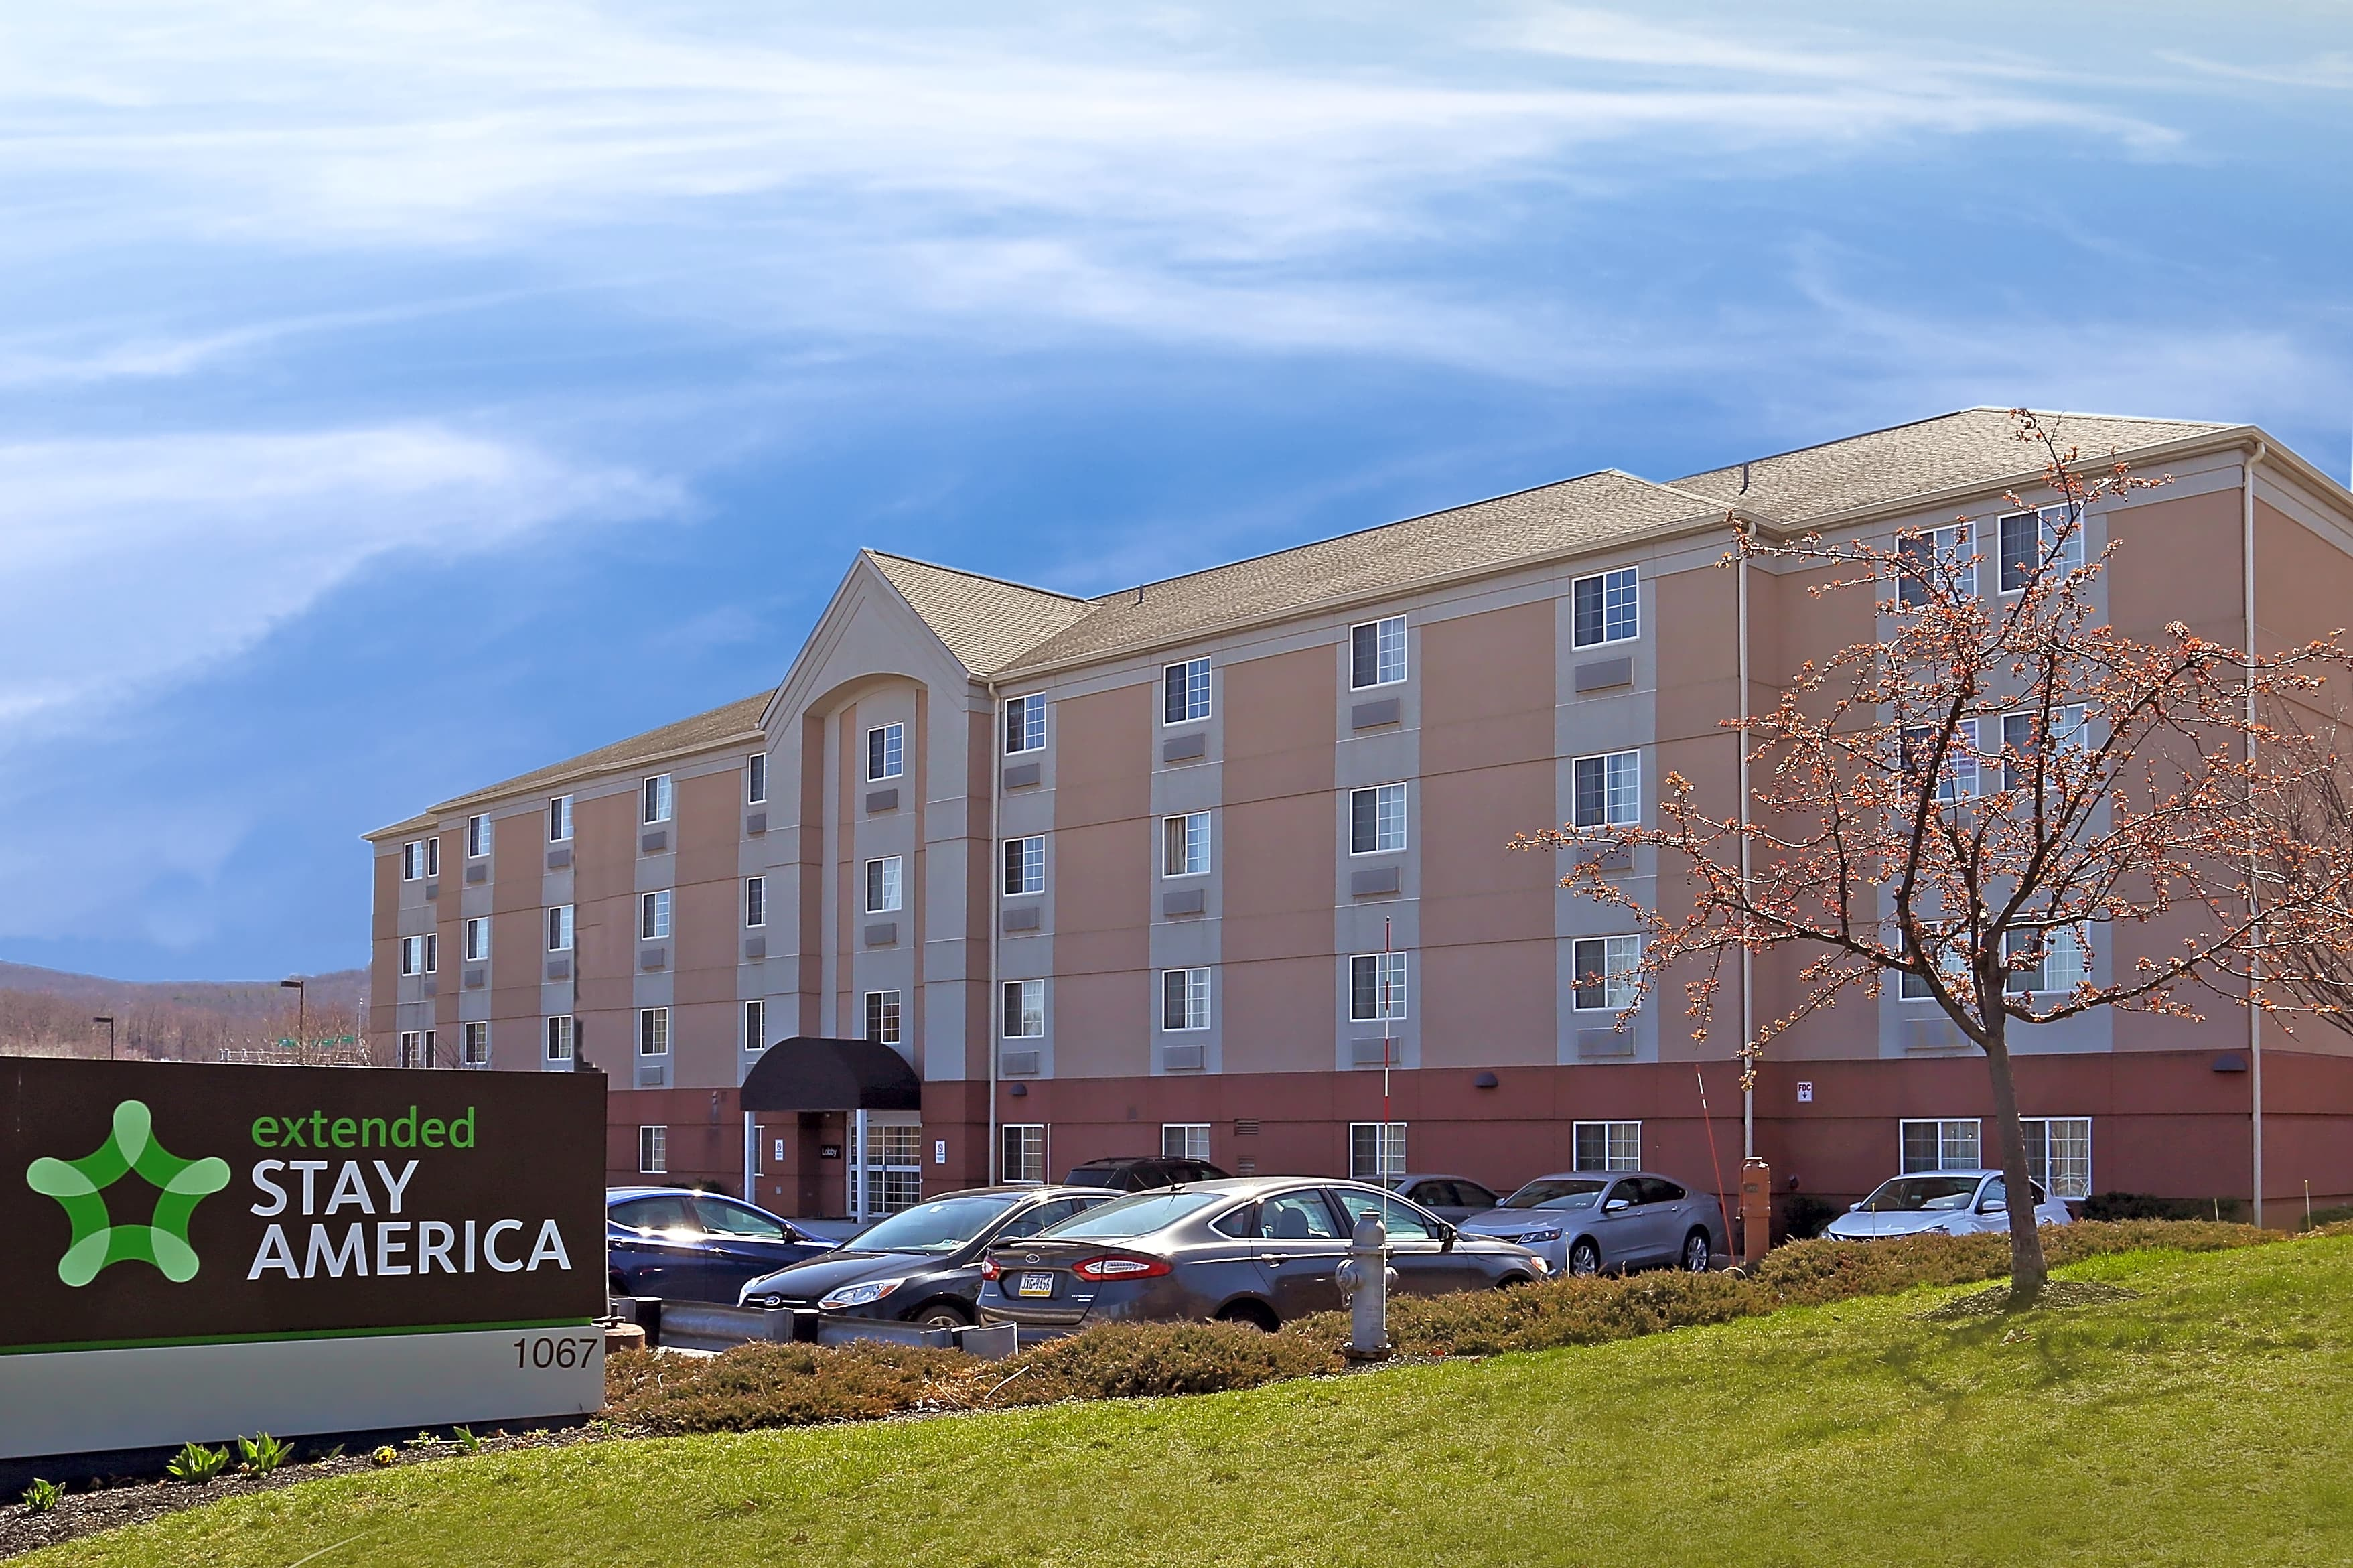 Apartments Near King's Furnished Studio - Wilkes-Barre - Hwy. 315 for King's College Students in Wilkes Barre, PA